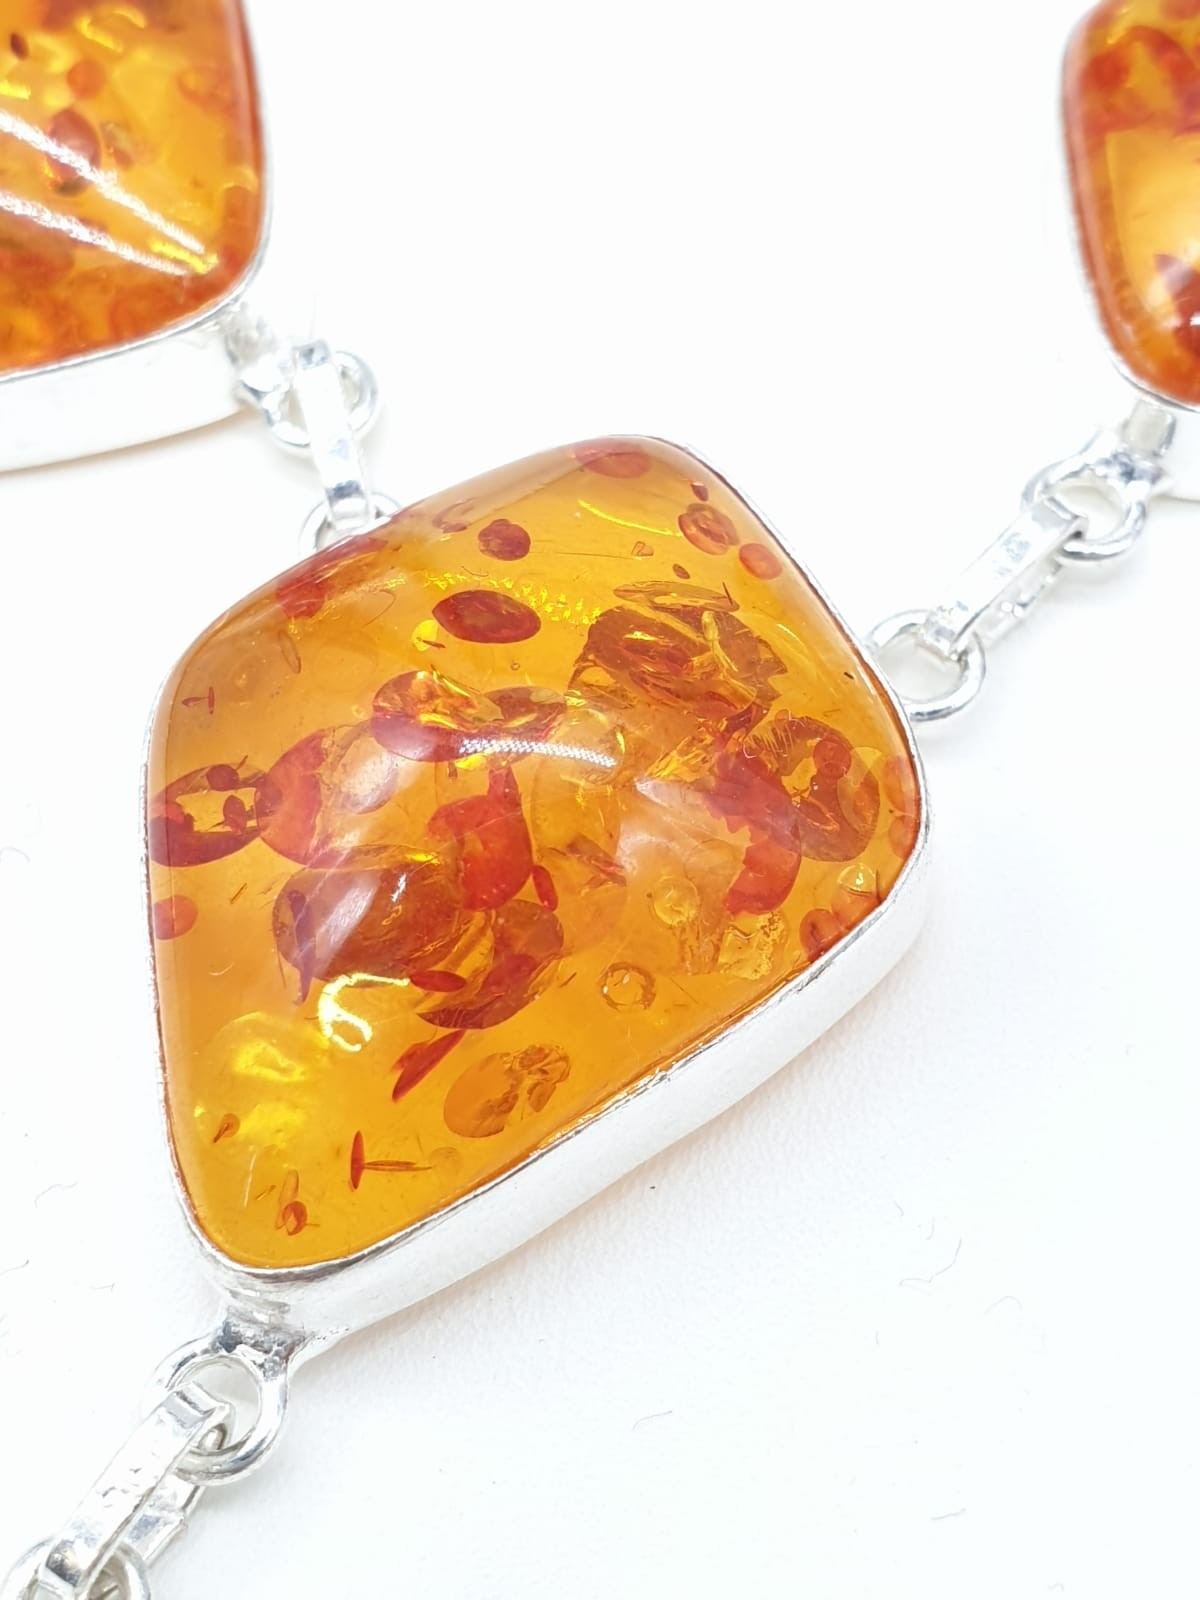 An Art Deco amber style necklace and bracelet set in a presentation box. Necklace length: 52cm. - Image 2 of 5